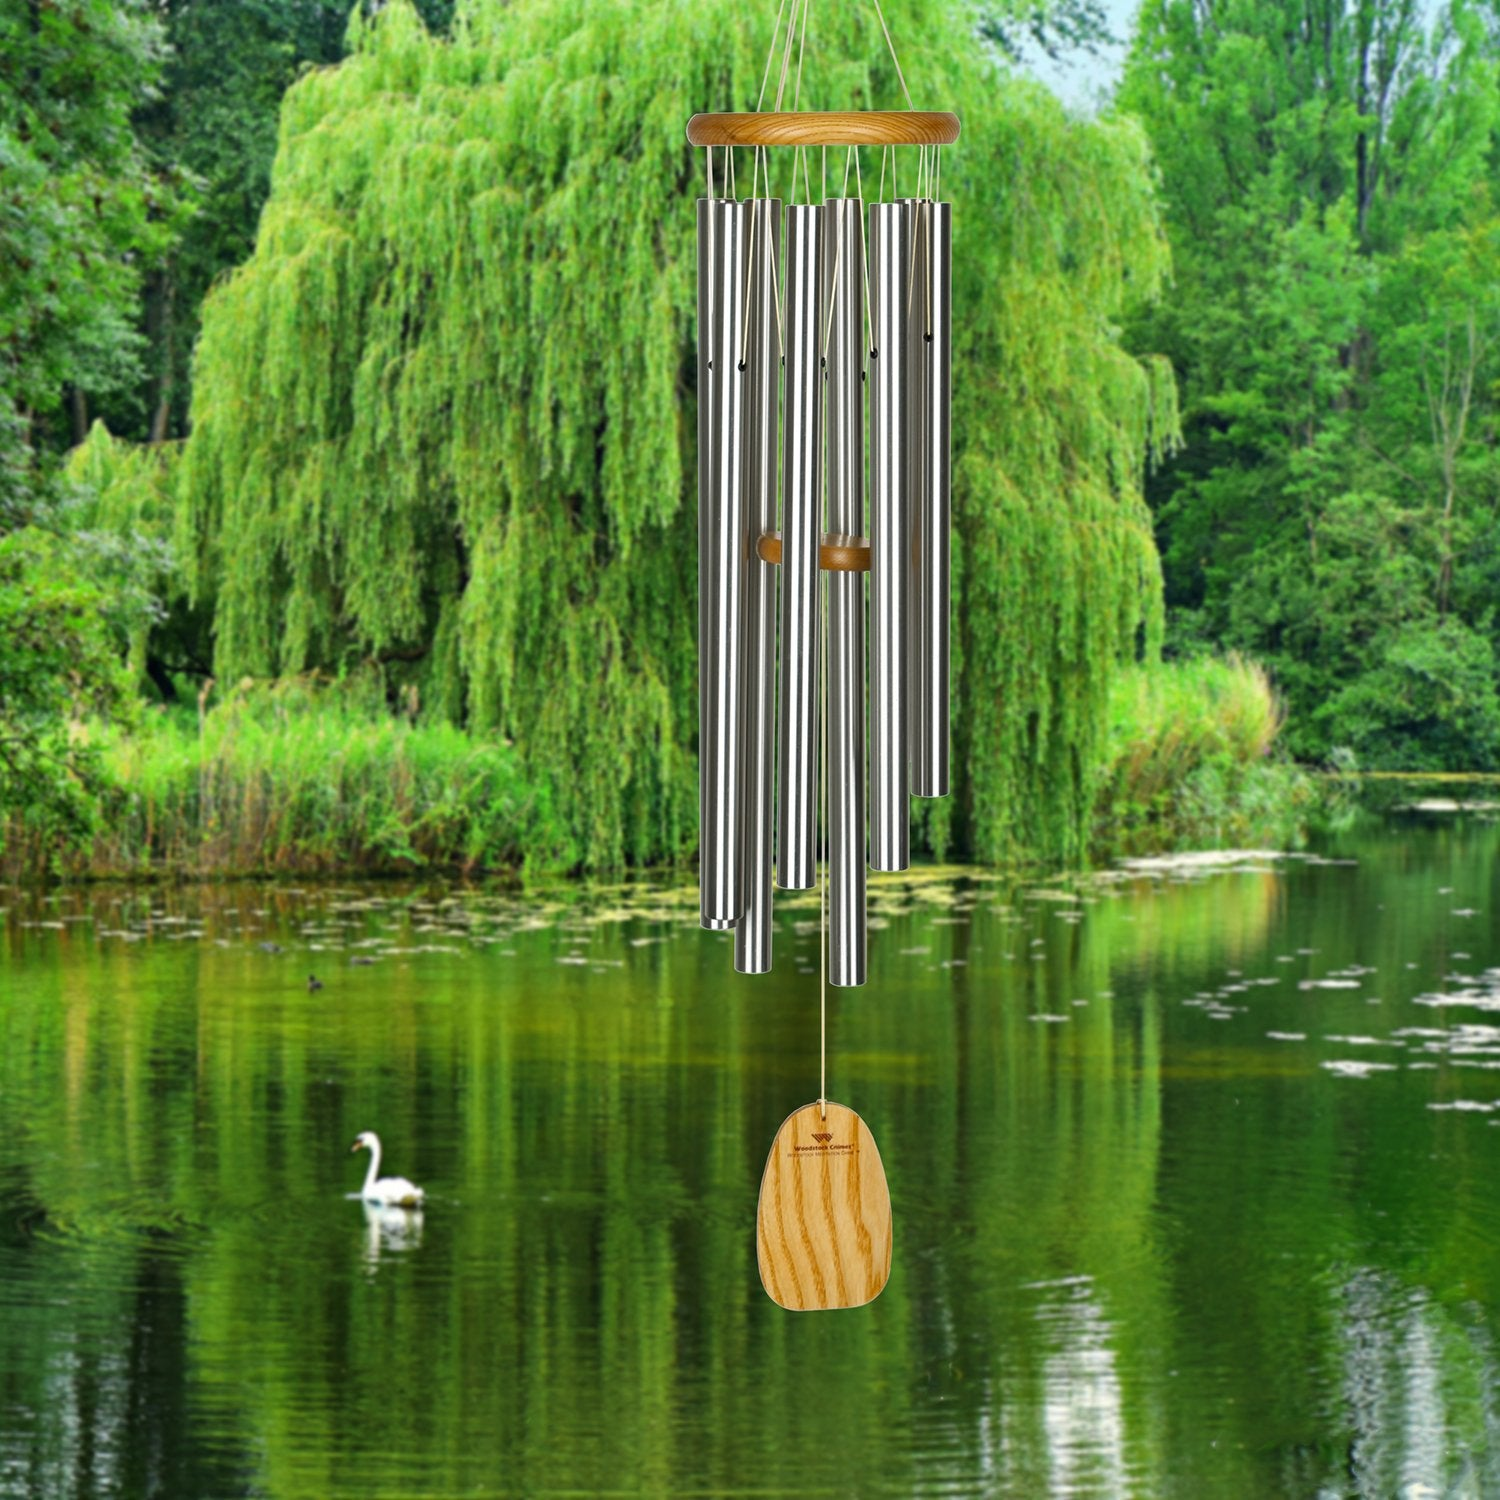 Soloist Series - Meditation Chime (with bonus CD) lifestyle image